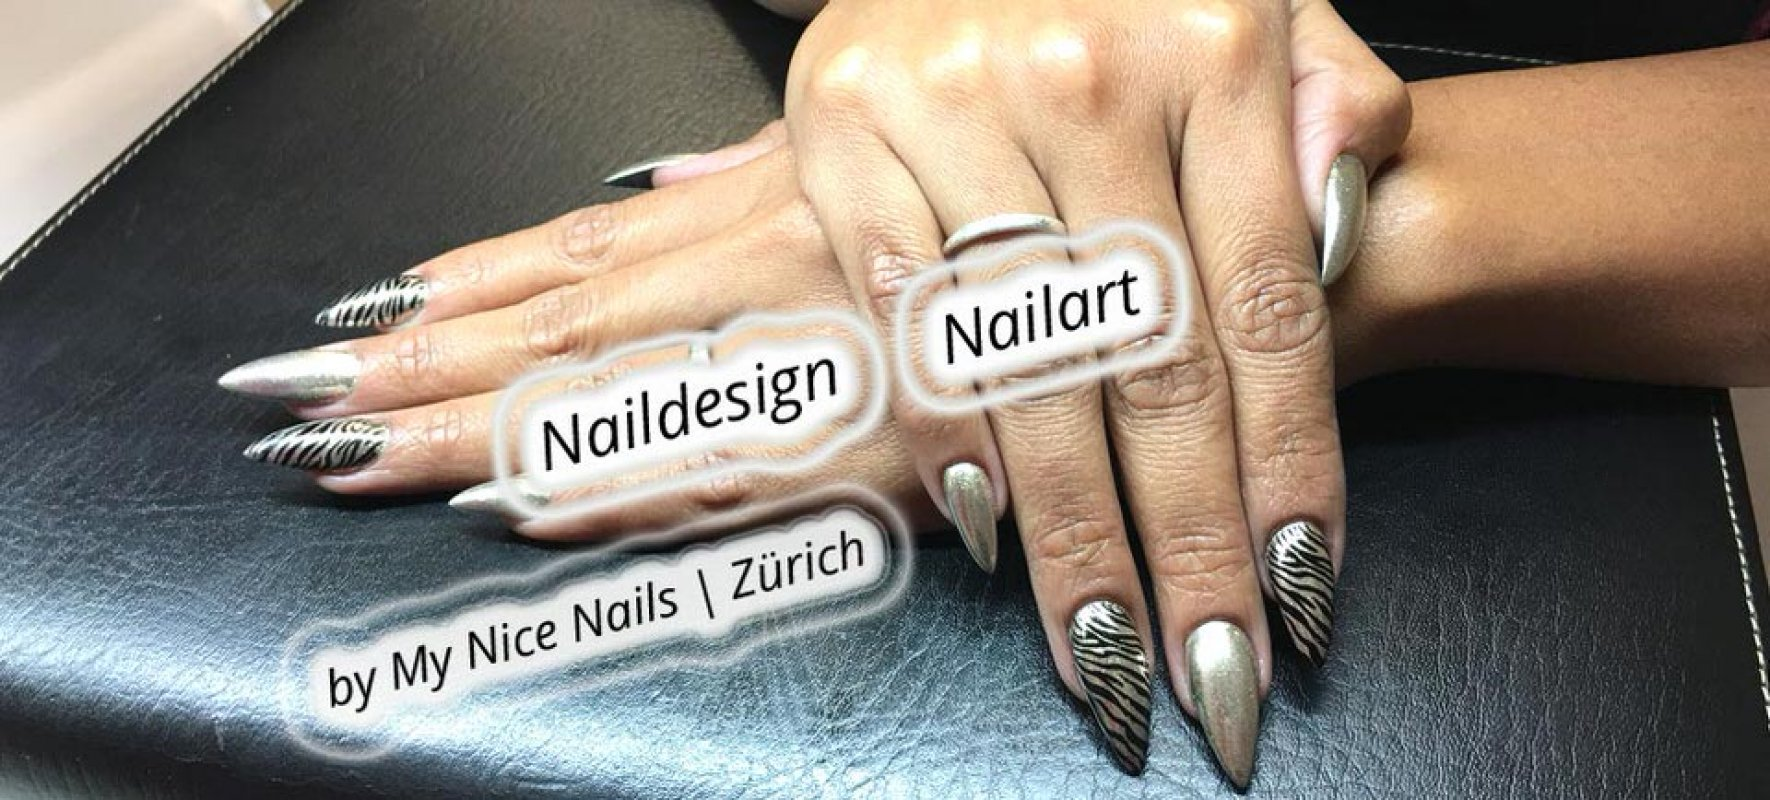 MY NICE NAILS | 100% Nails | Perfection & Kindliness – Nail Studio ...